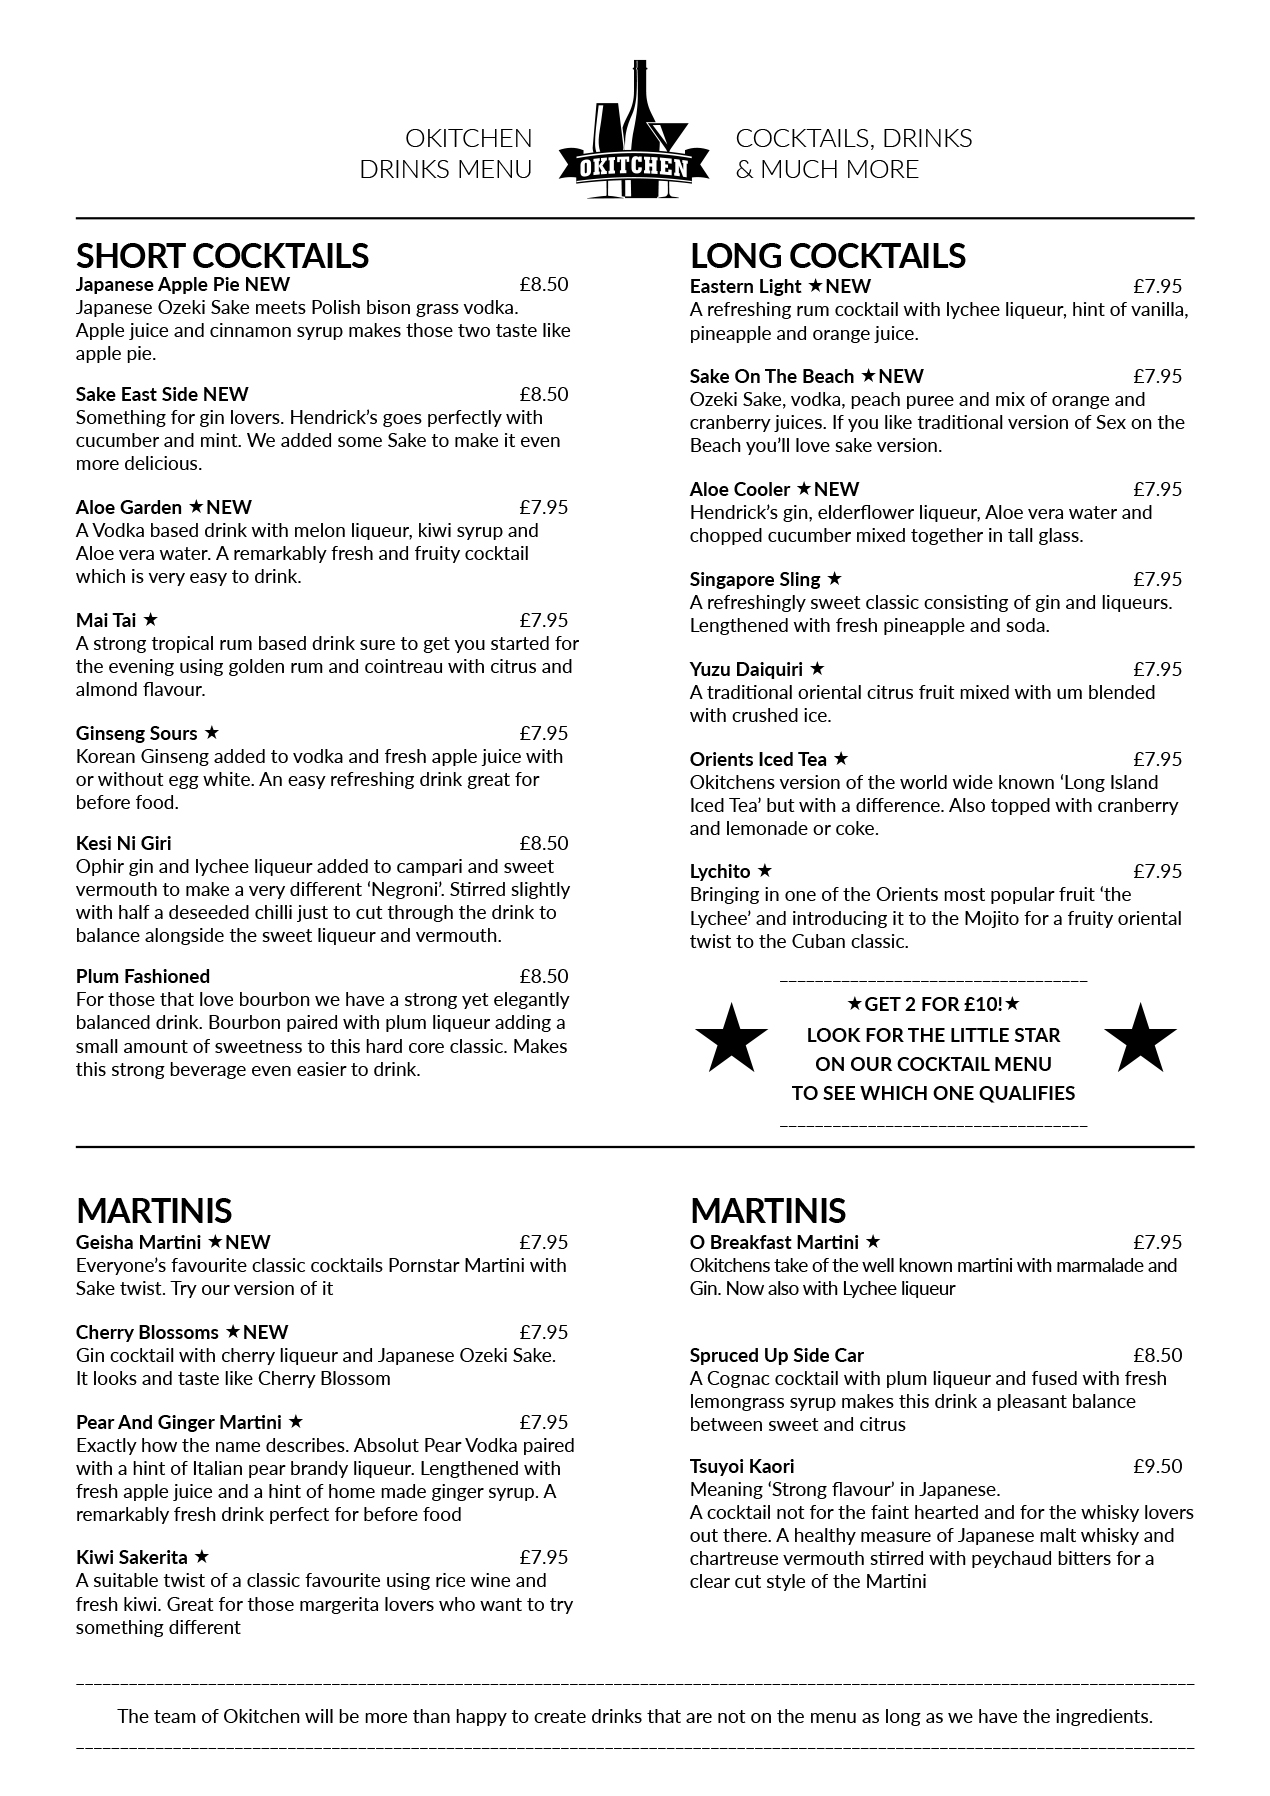 NEW OKITCHEN DRINKS MENU A4 4PAGE 2018-1